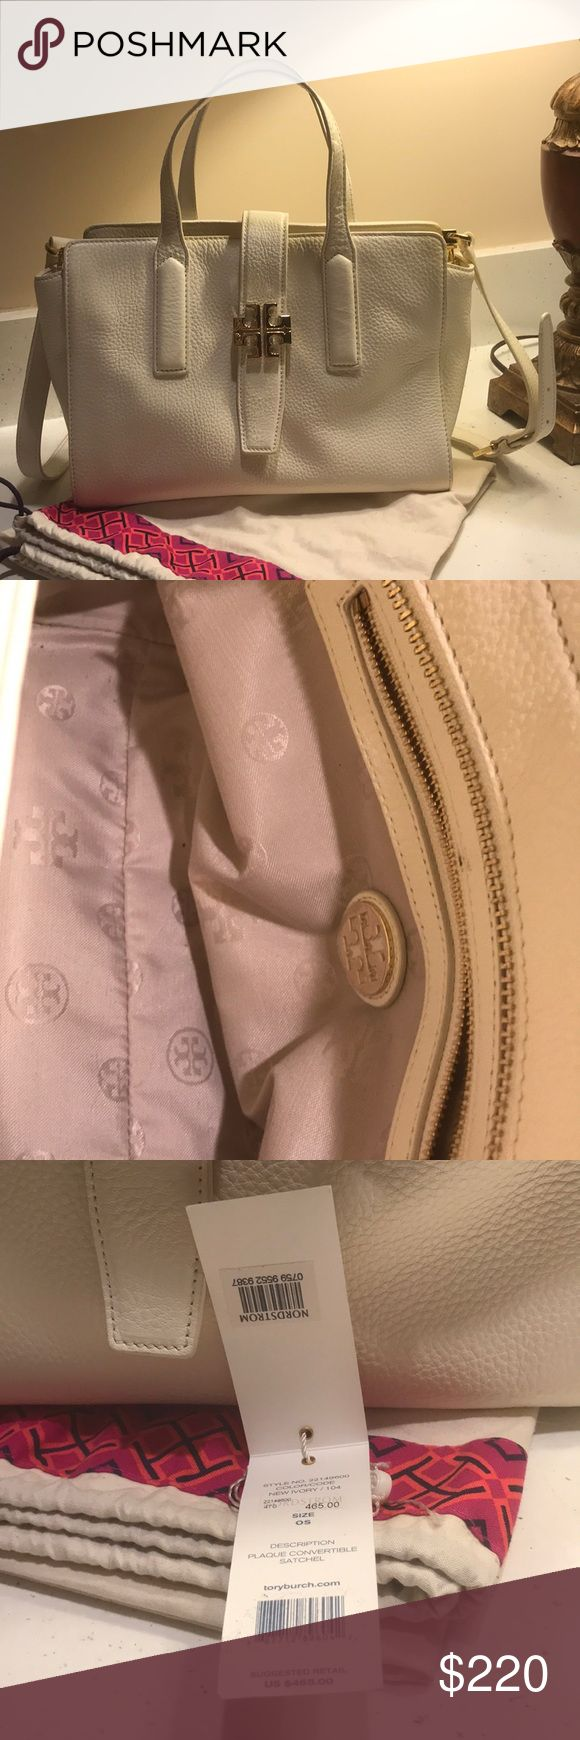 Tony Burch bag Nice soft leather Tory purse with dust bag Tory Burch Bags Satchels